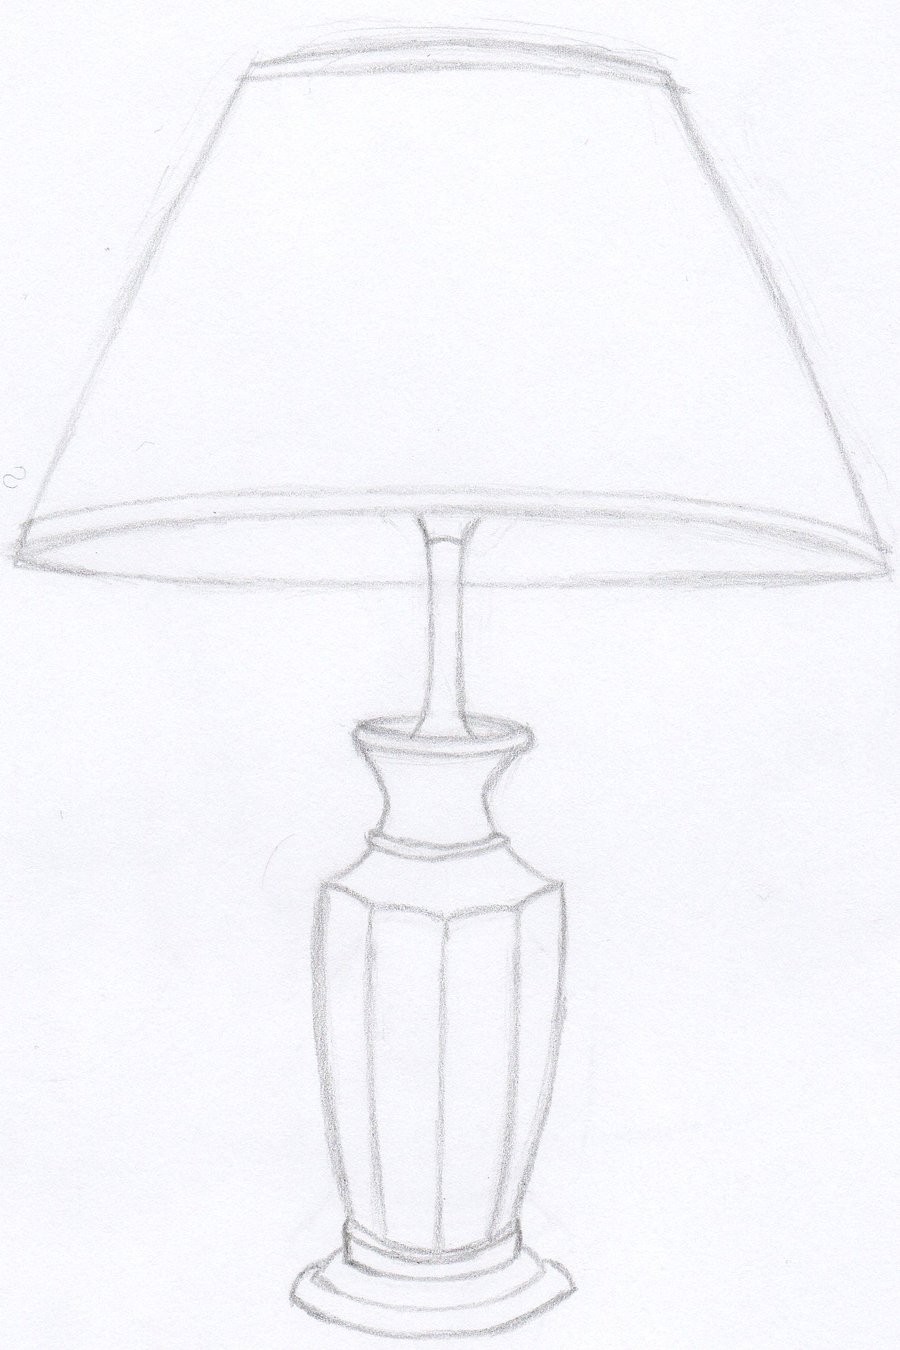 Decorate Your House Using The Drawing Of A Lamp